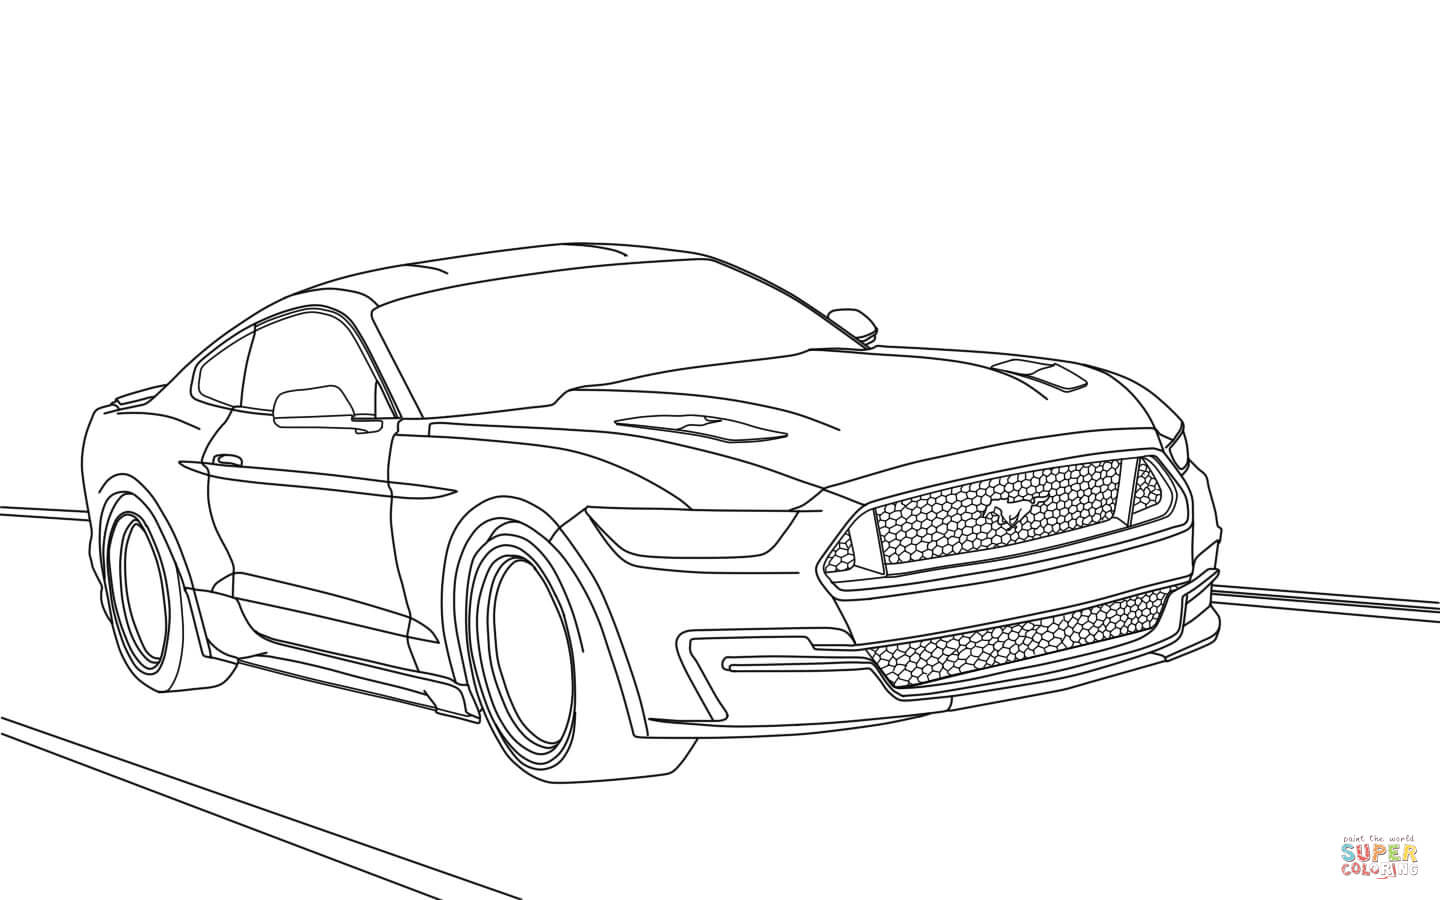 Ford Mustang 2015 Coloring Page Gallery Of Super Car ford Mustang Coloring Page Inspirational Mustang Download Printable